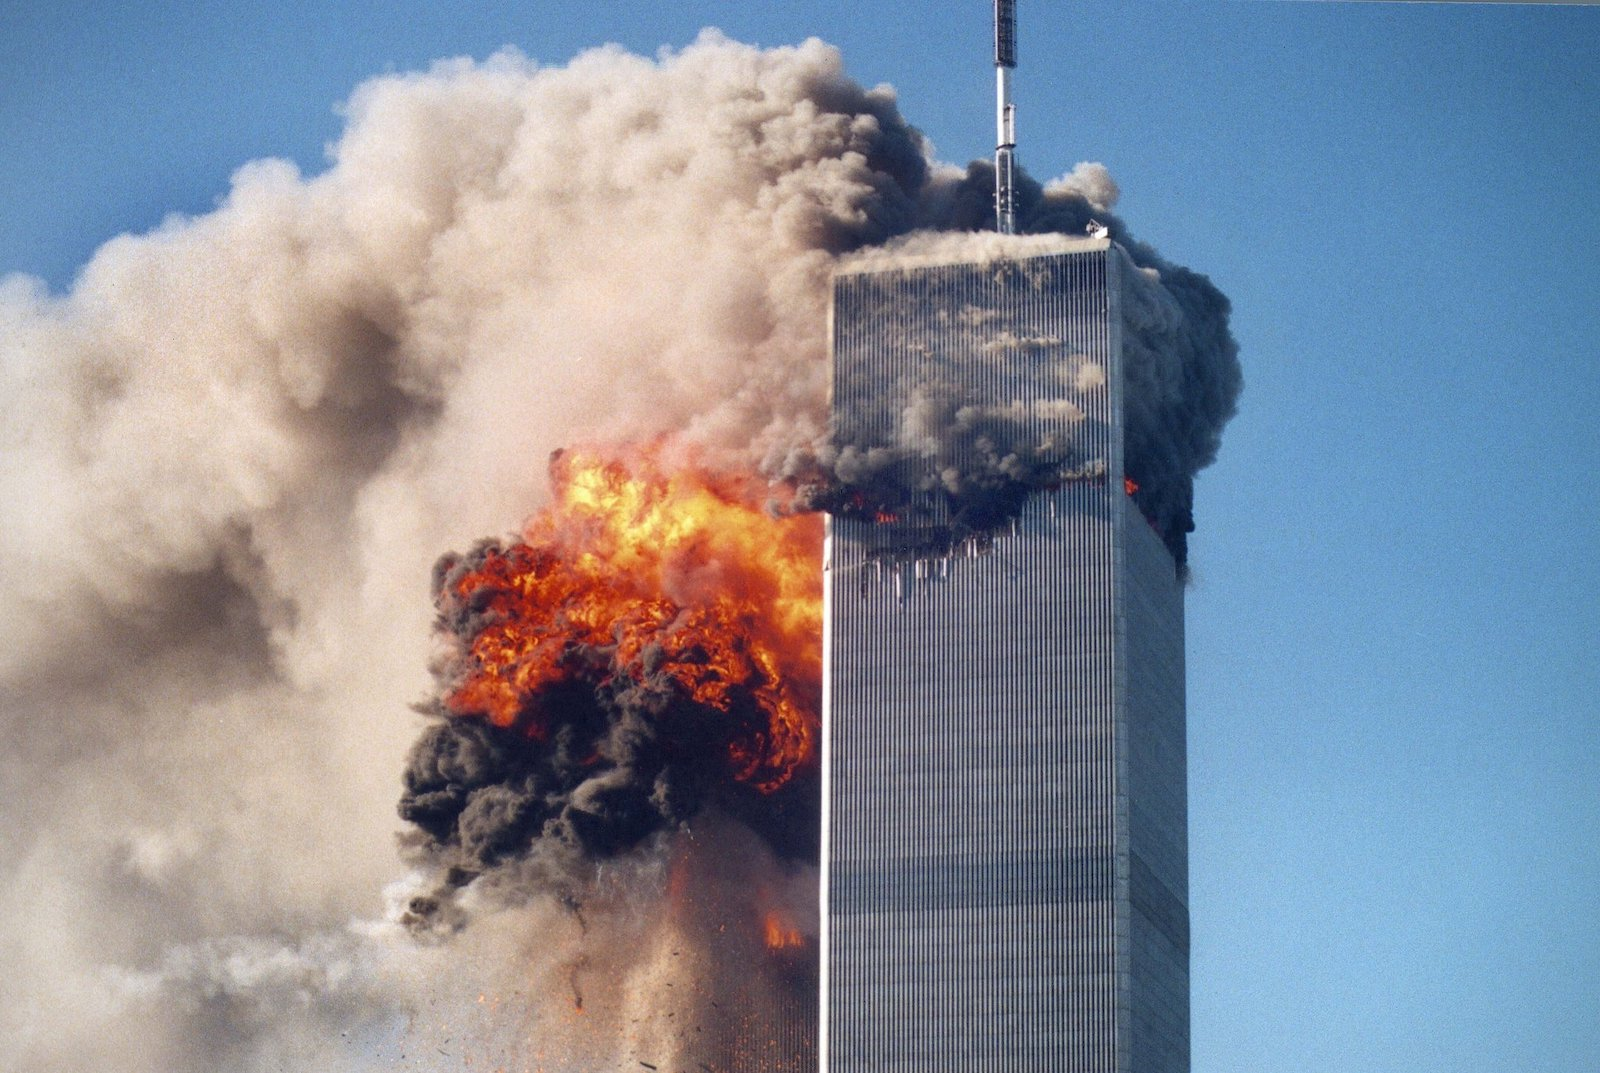 Lessons from 9/11 and Rejecting the 'New Normal'